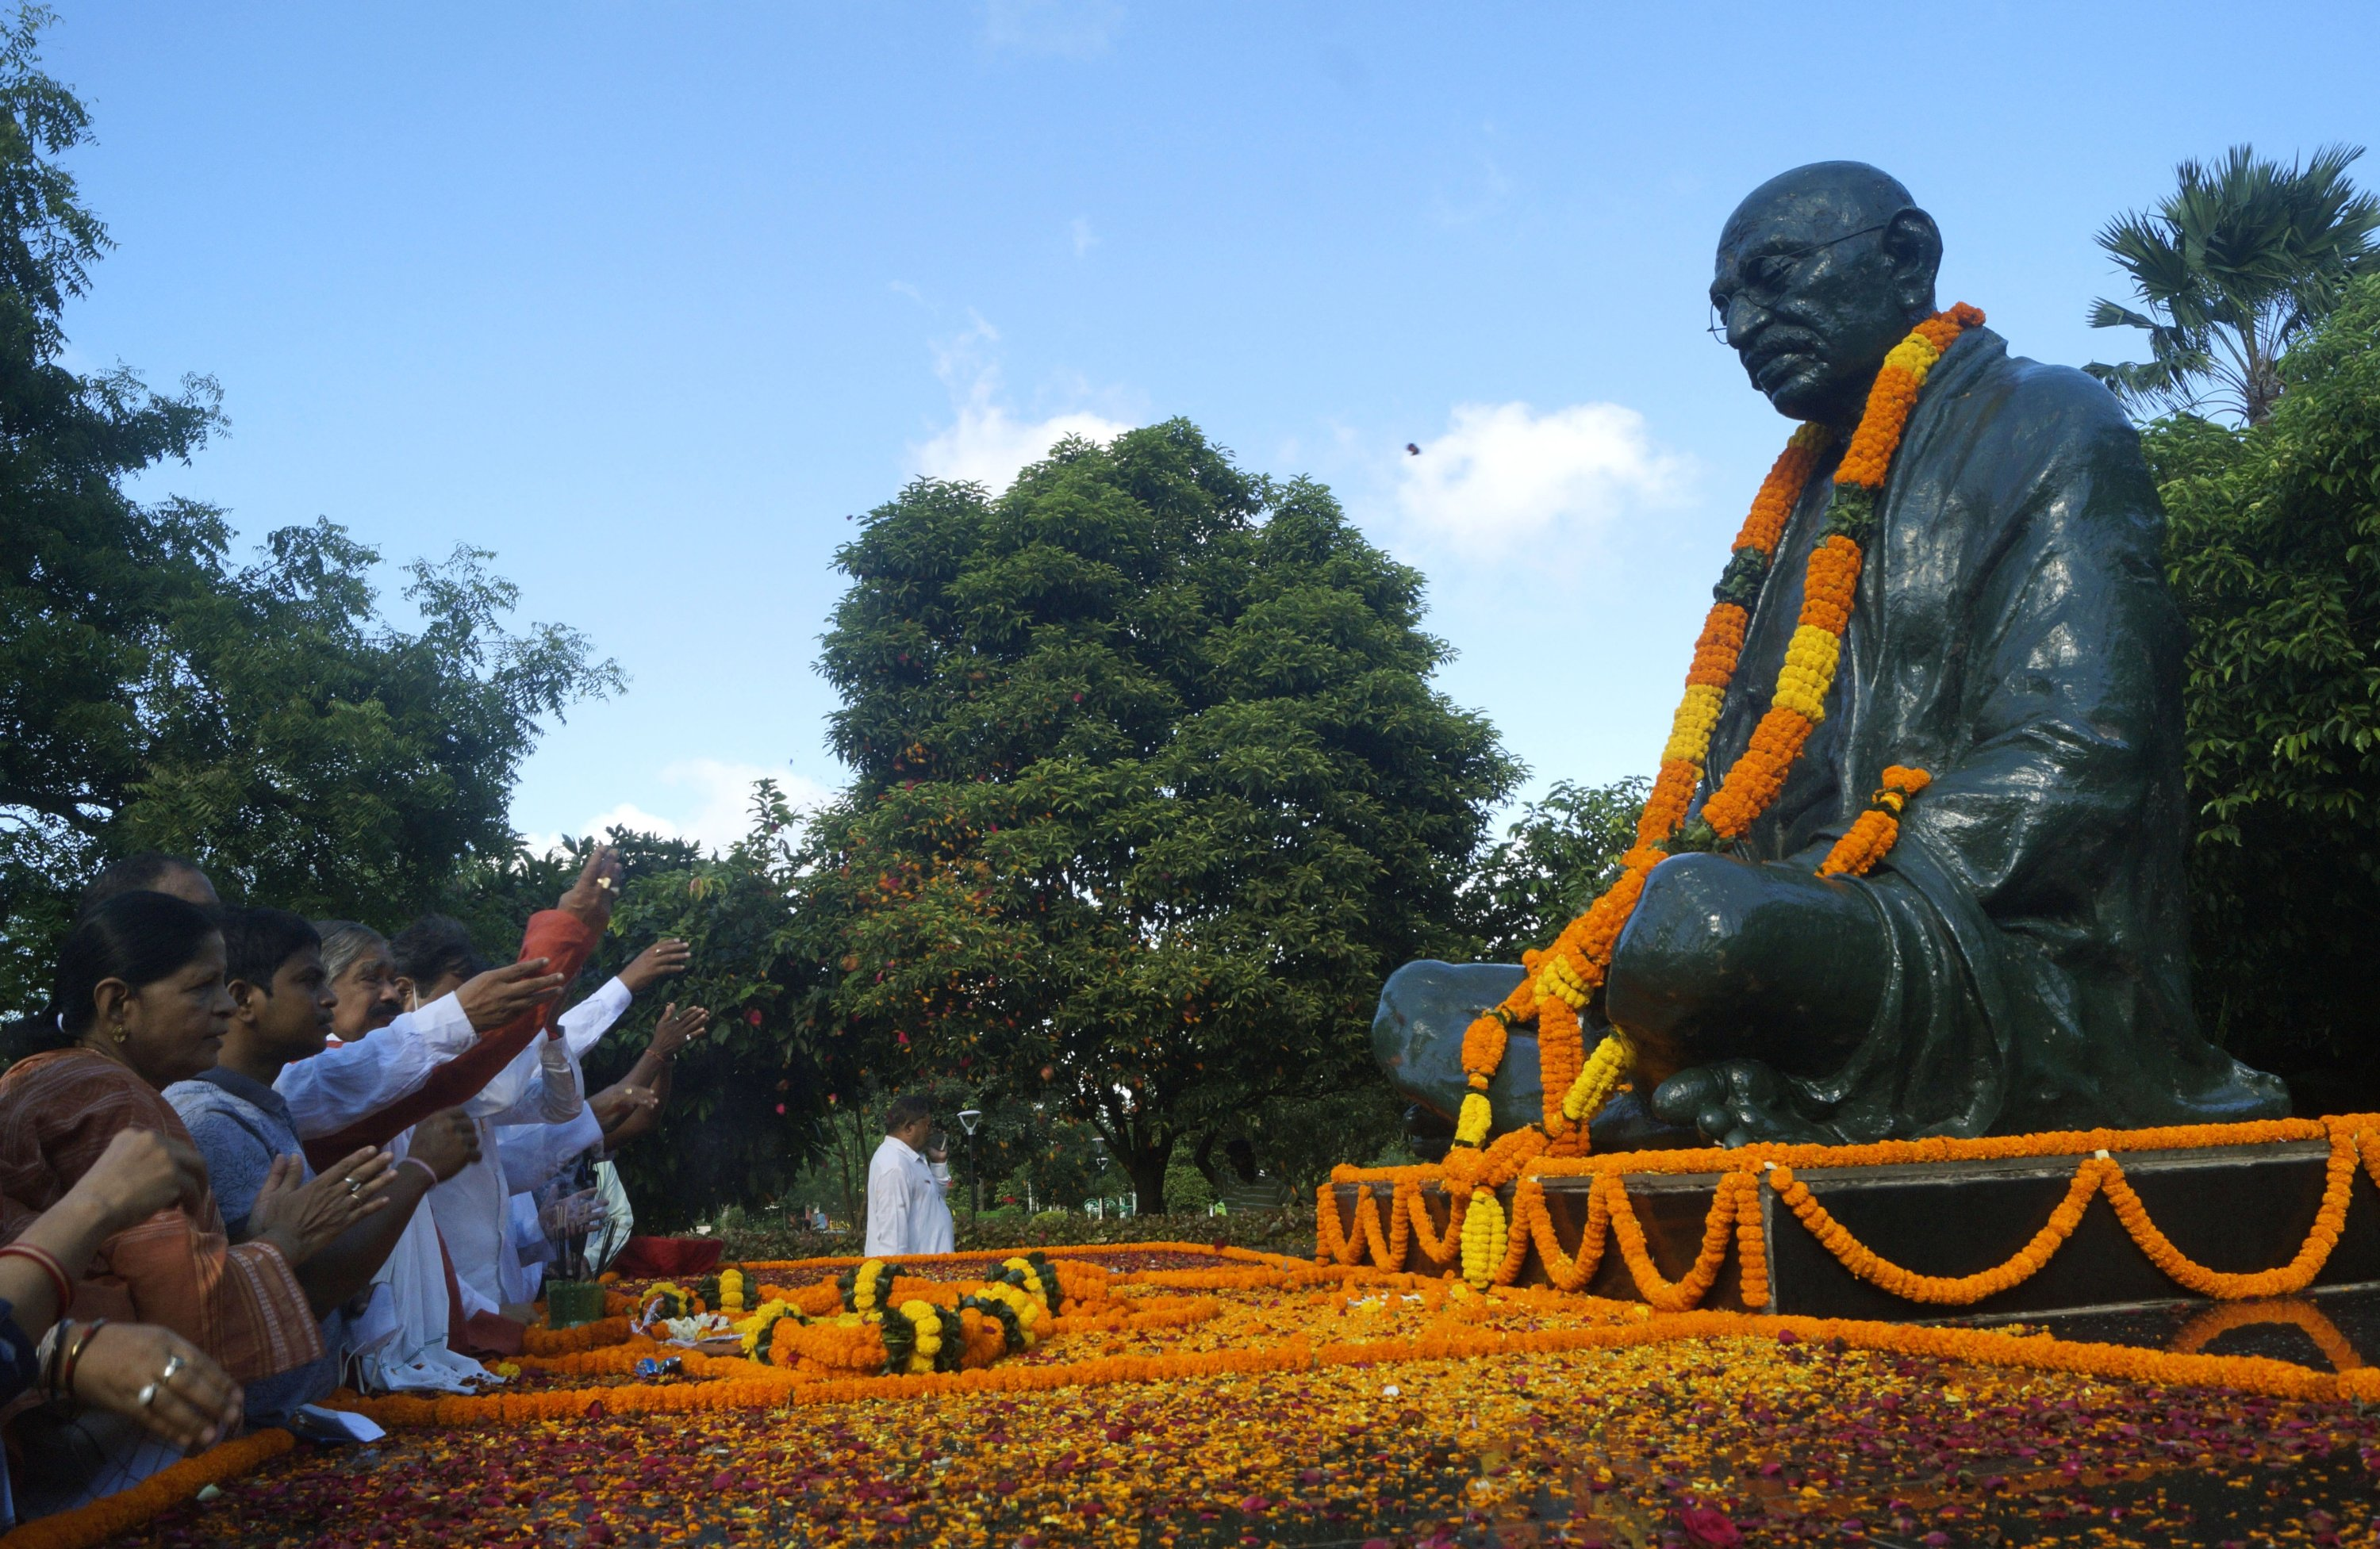 People pay floral tribute to the statue of Mahatma Gandhi at a public park on the occasion of the anniversary of his birth, Bhubaneswar, India, Oct. 2, 2021.  (Photo by STR/NurPhoto via Getty Images)